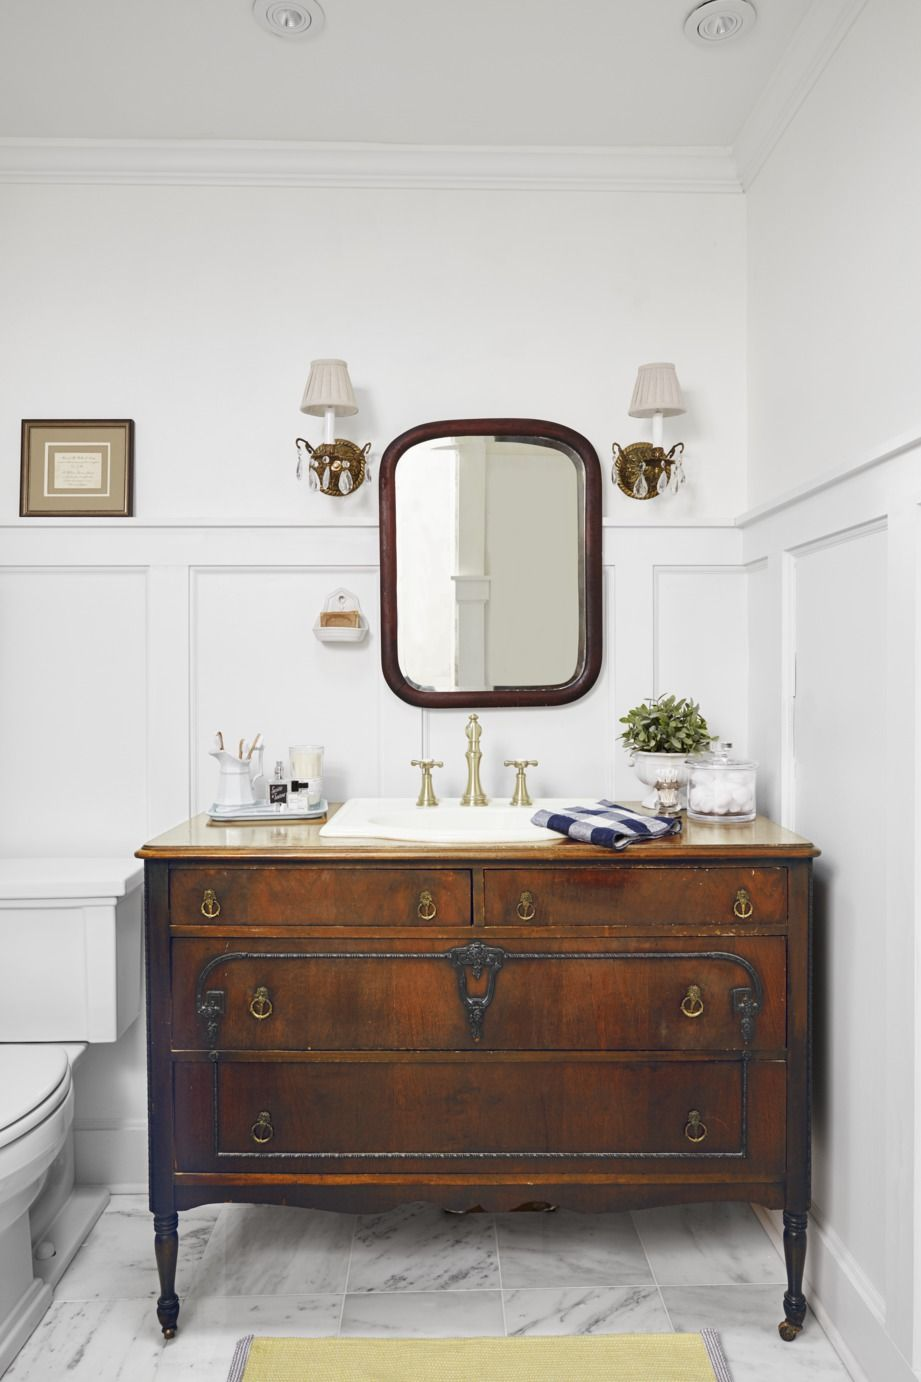 Pleated Shades and Crystal Sconces with rustic bathroom lighting ideas with accessories in white bathroom